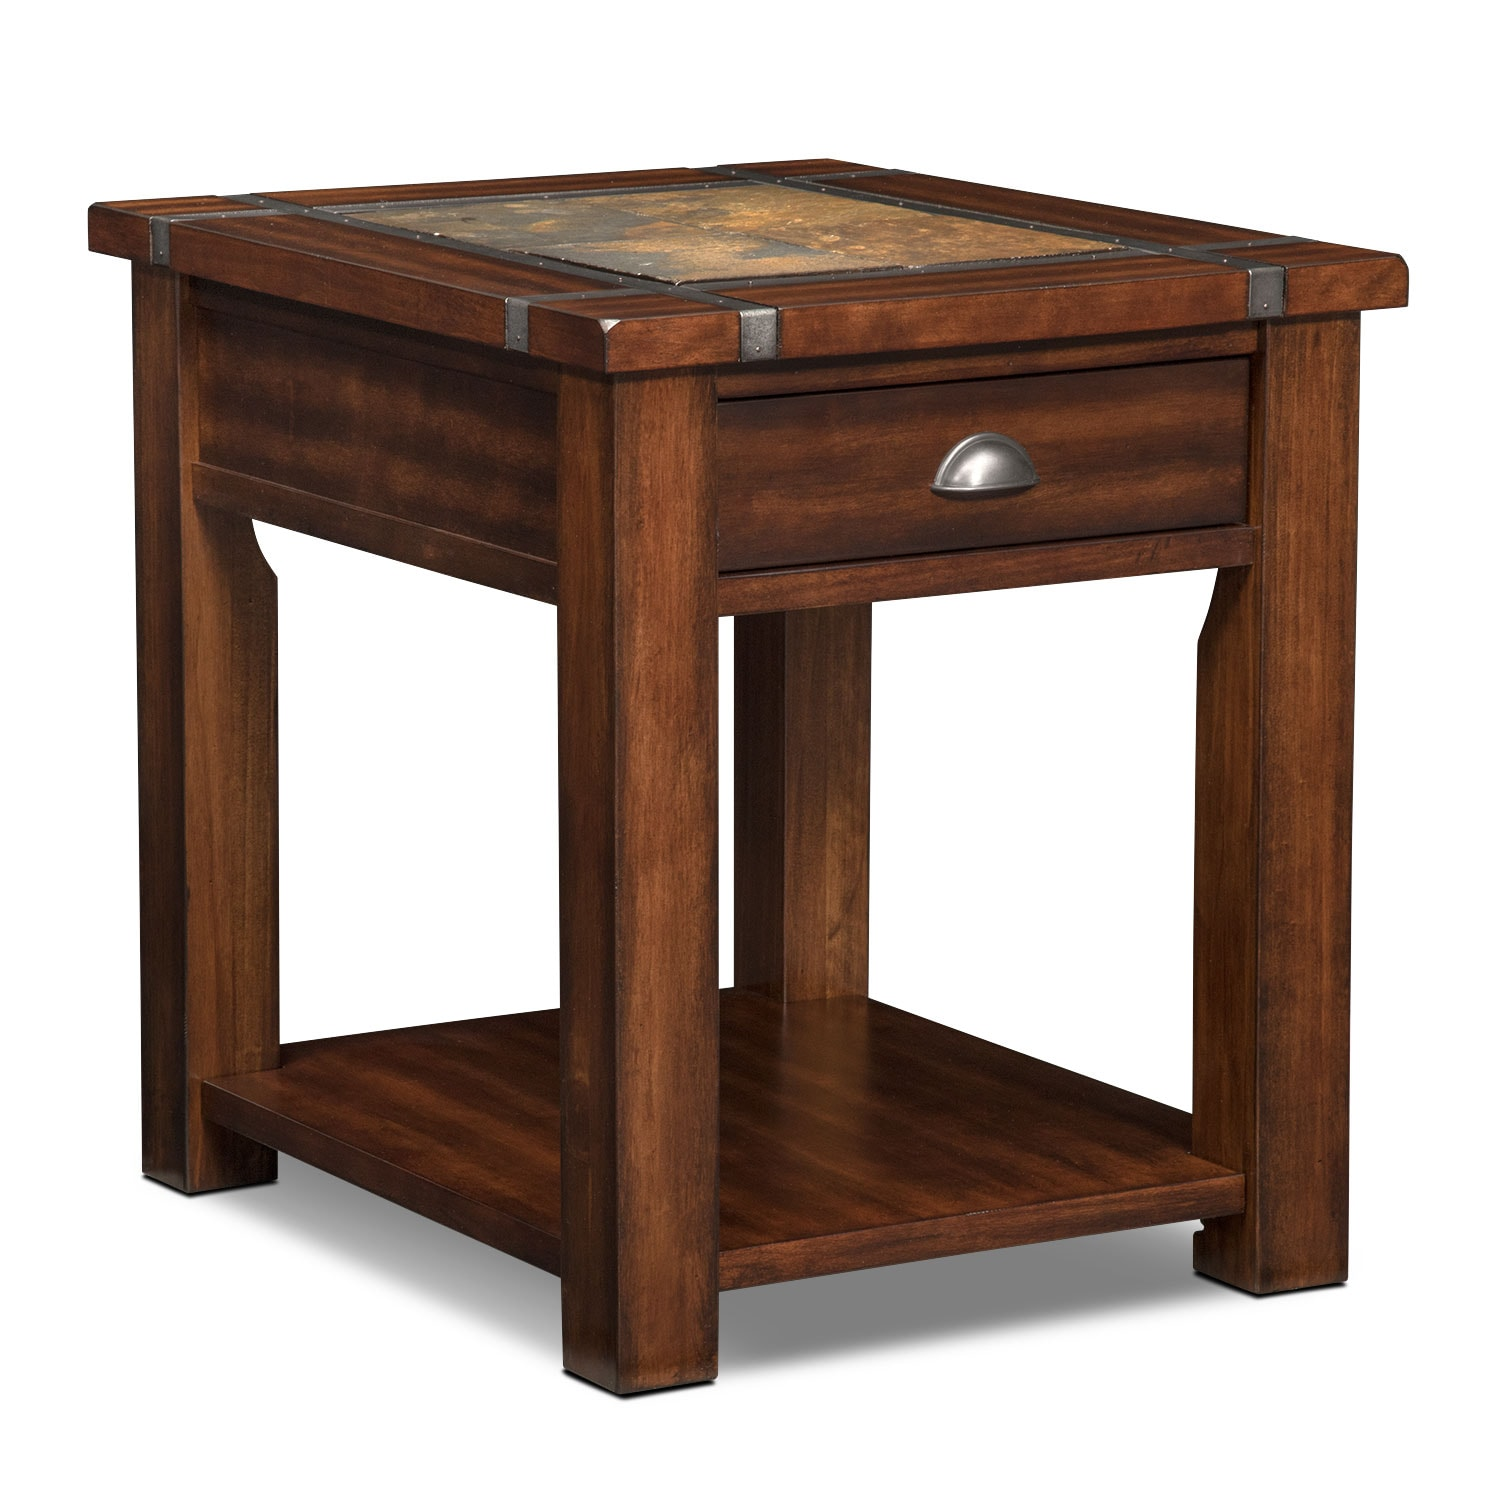 Merveilleux Slate Ridge End Table   Cherry